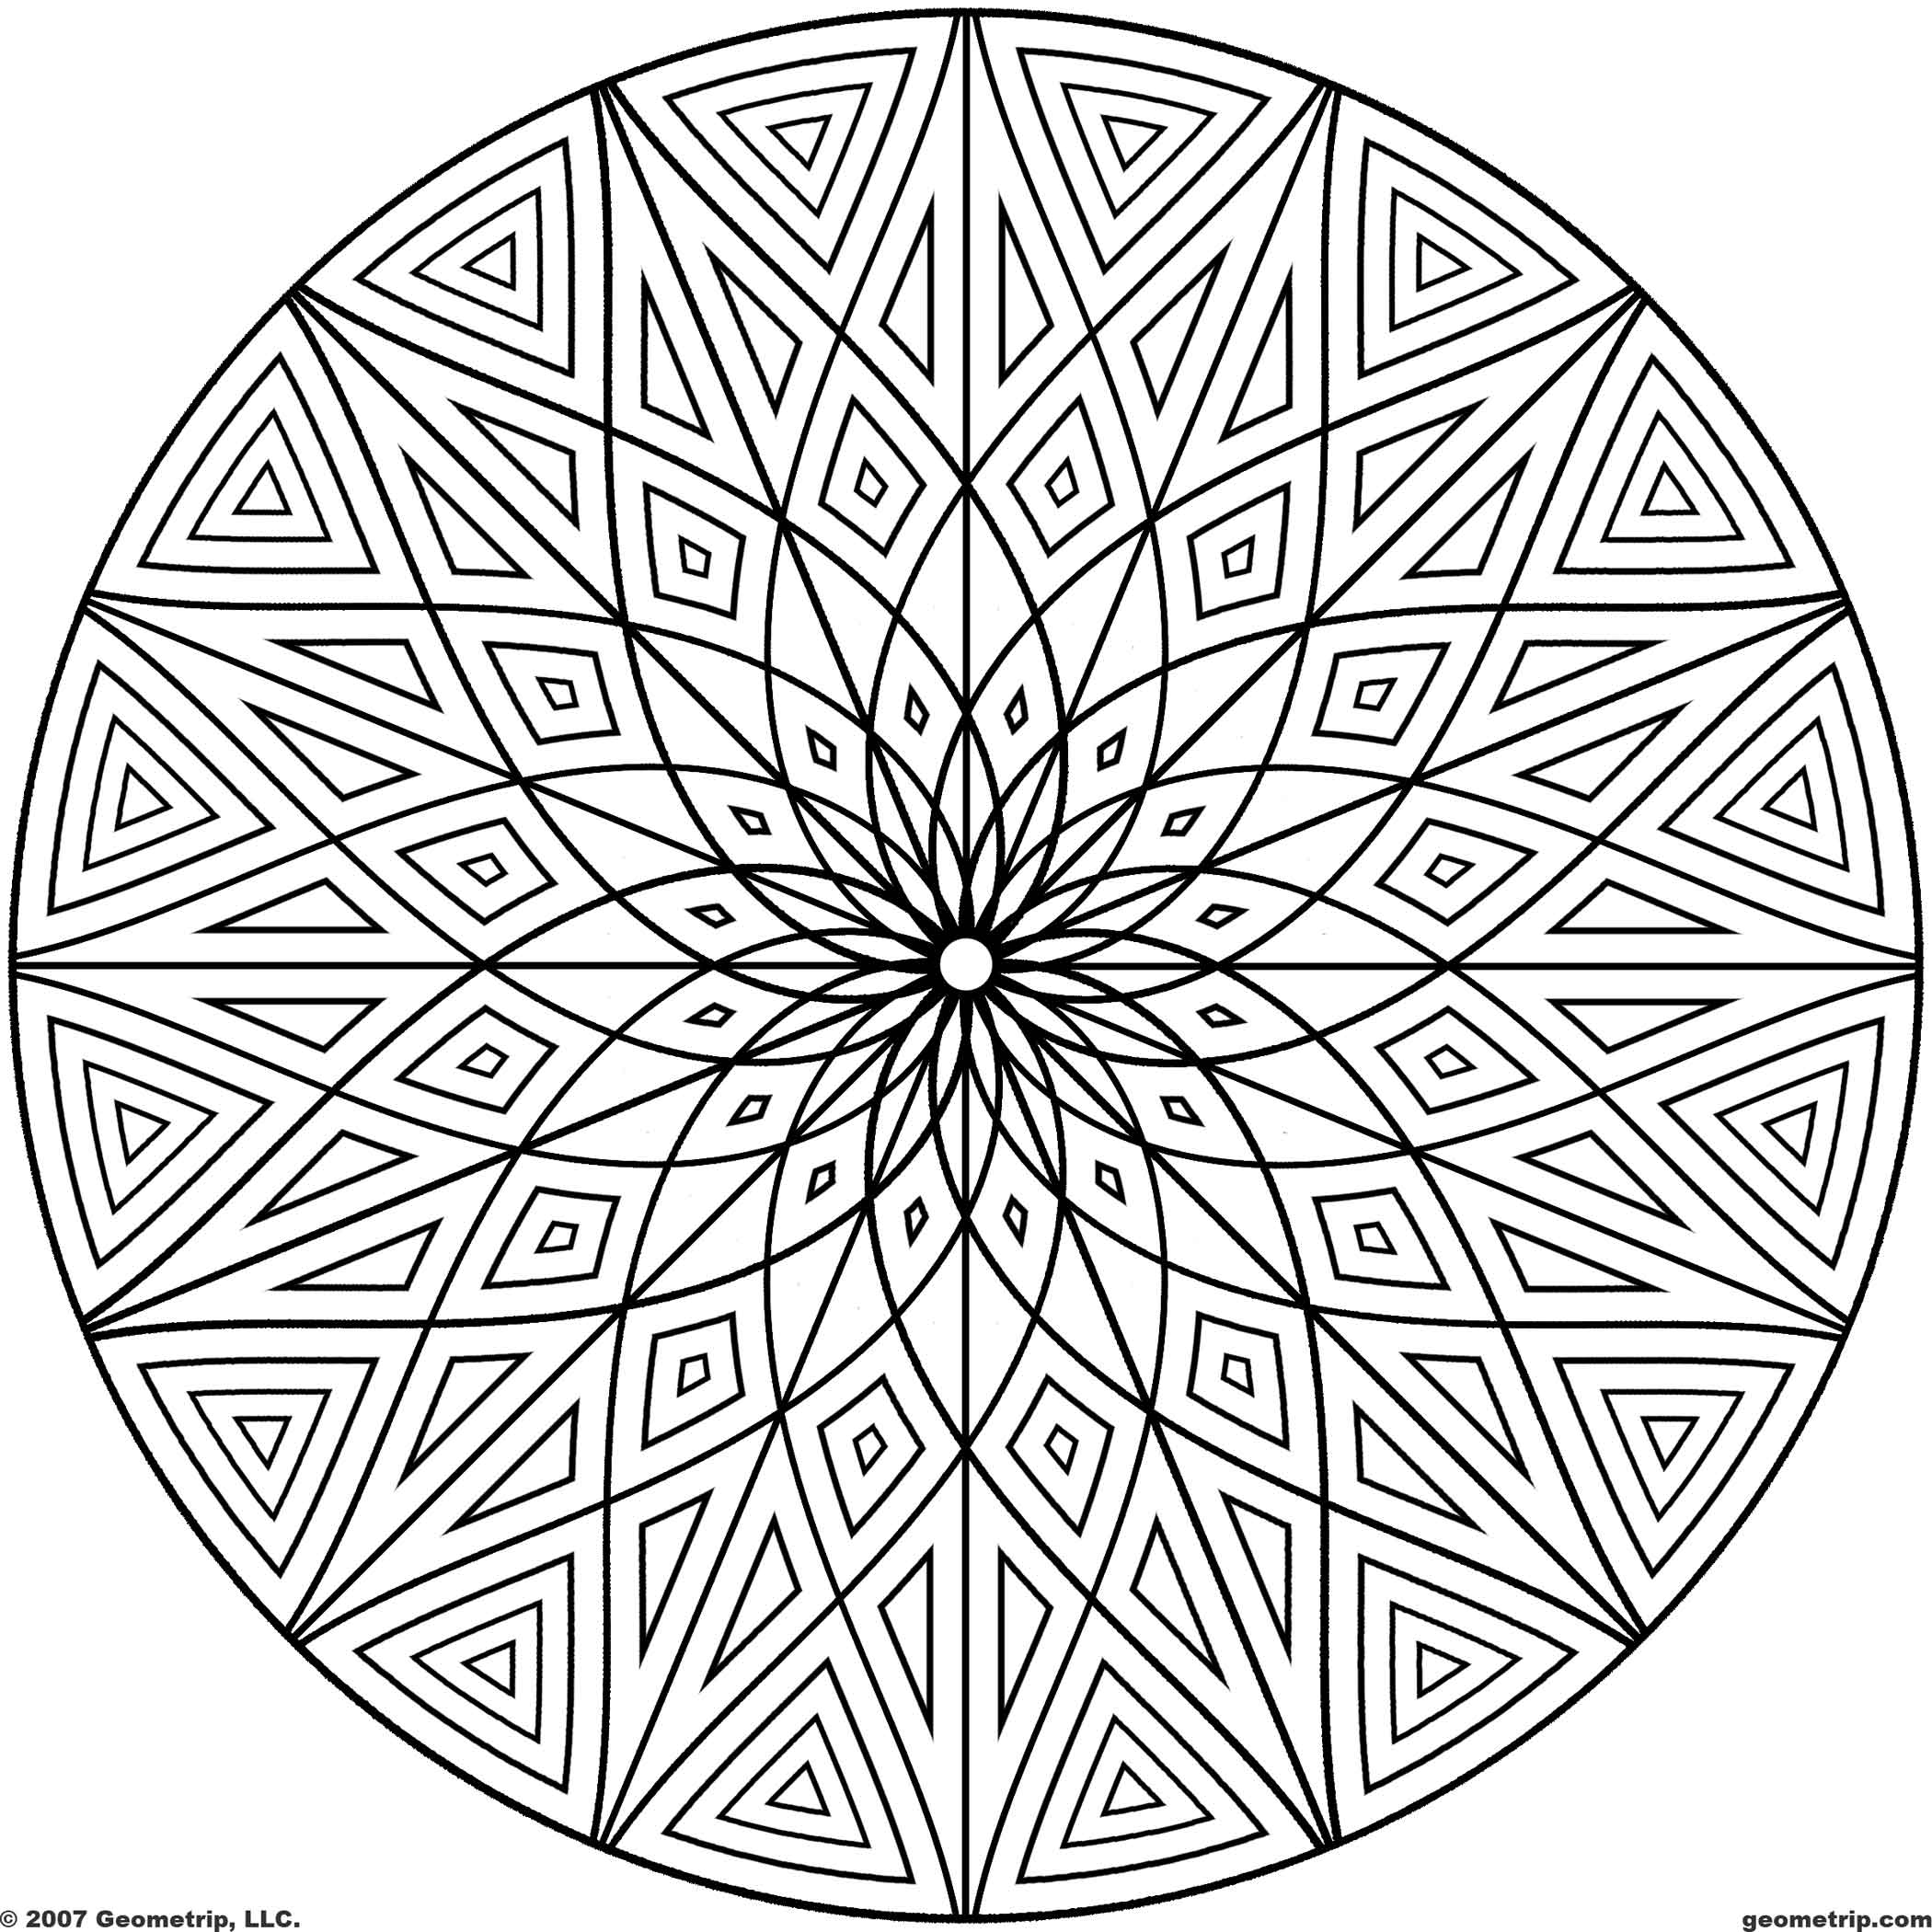 2100x2100 Printable Geometric Patterns At Cool Design Coloring Pages